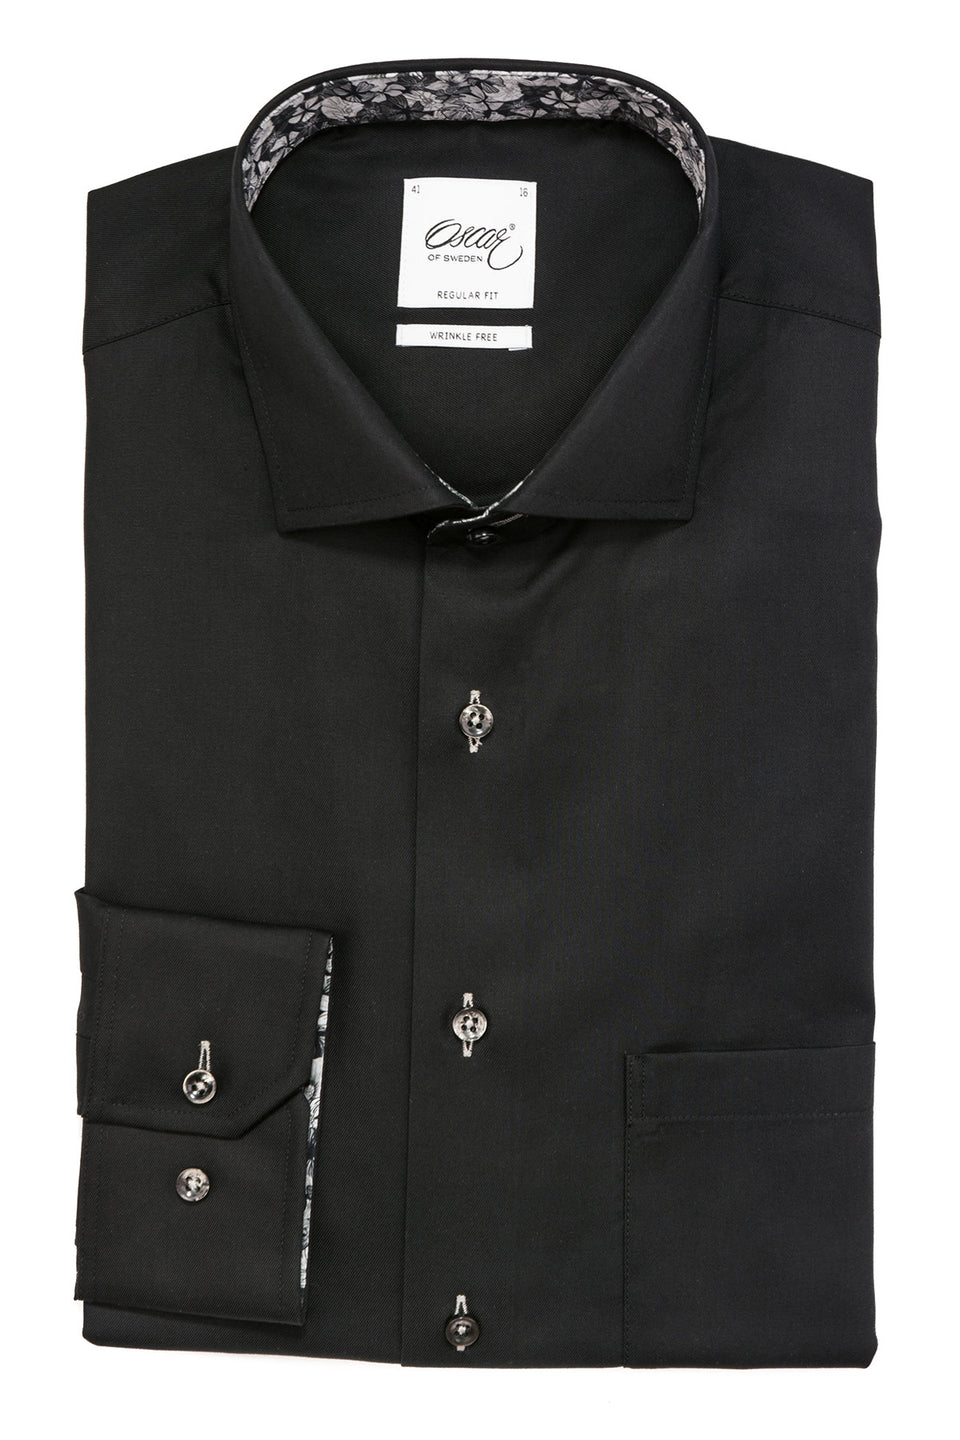 Black regular fit shirt with contrast details